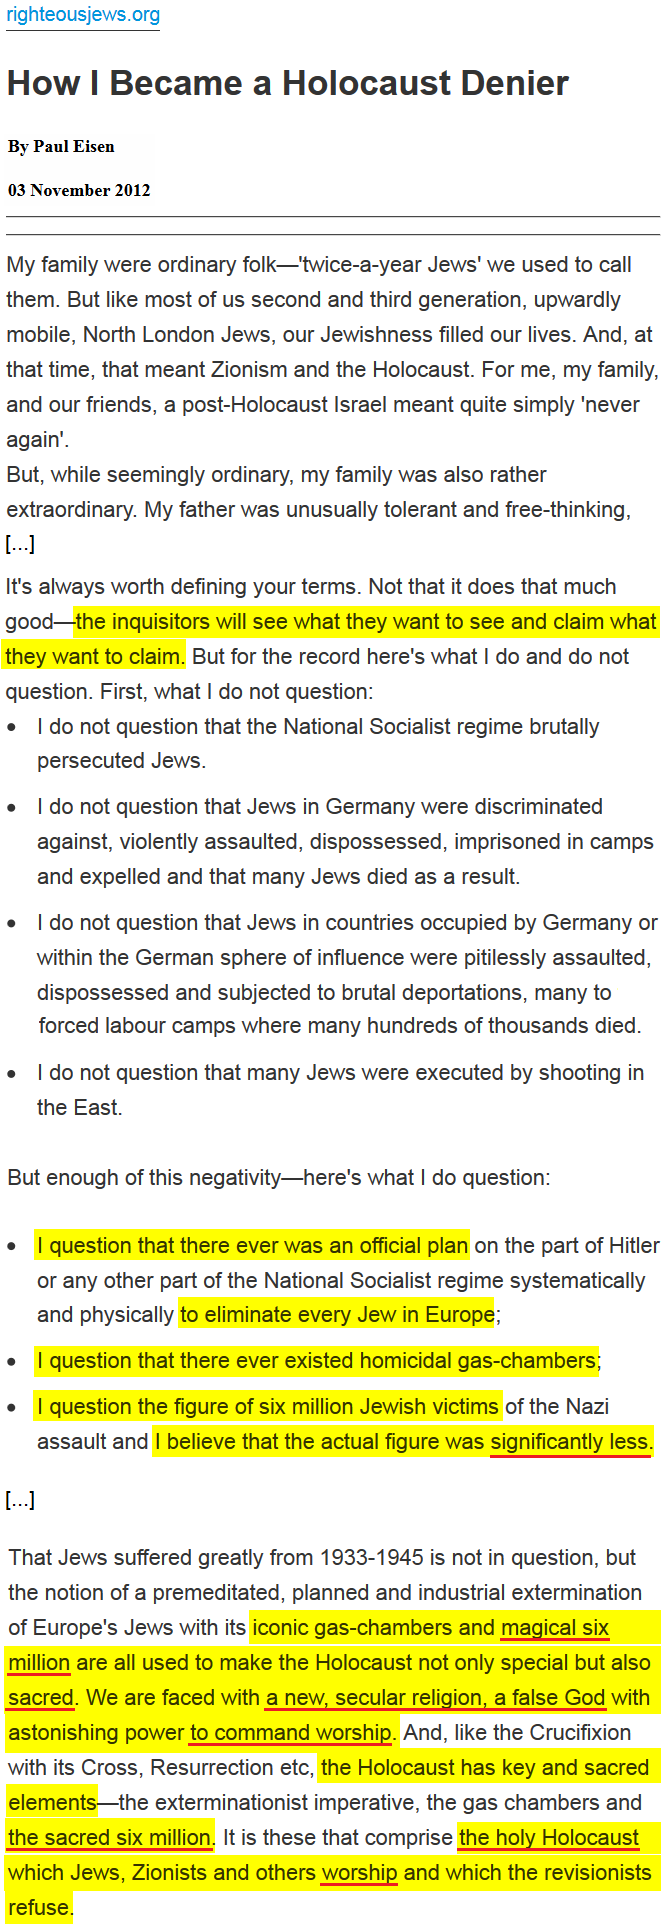 2012-11-03_How_I_Became_a_Holocaust_Denier_RighteousJews.org